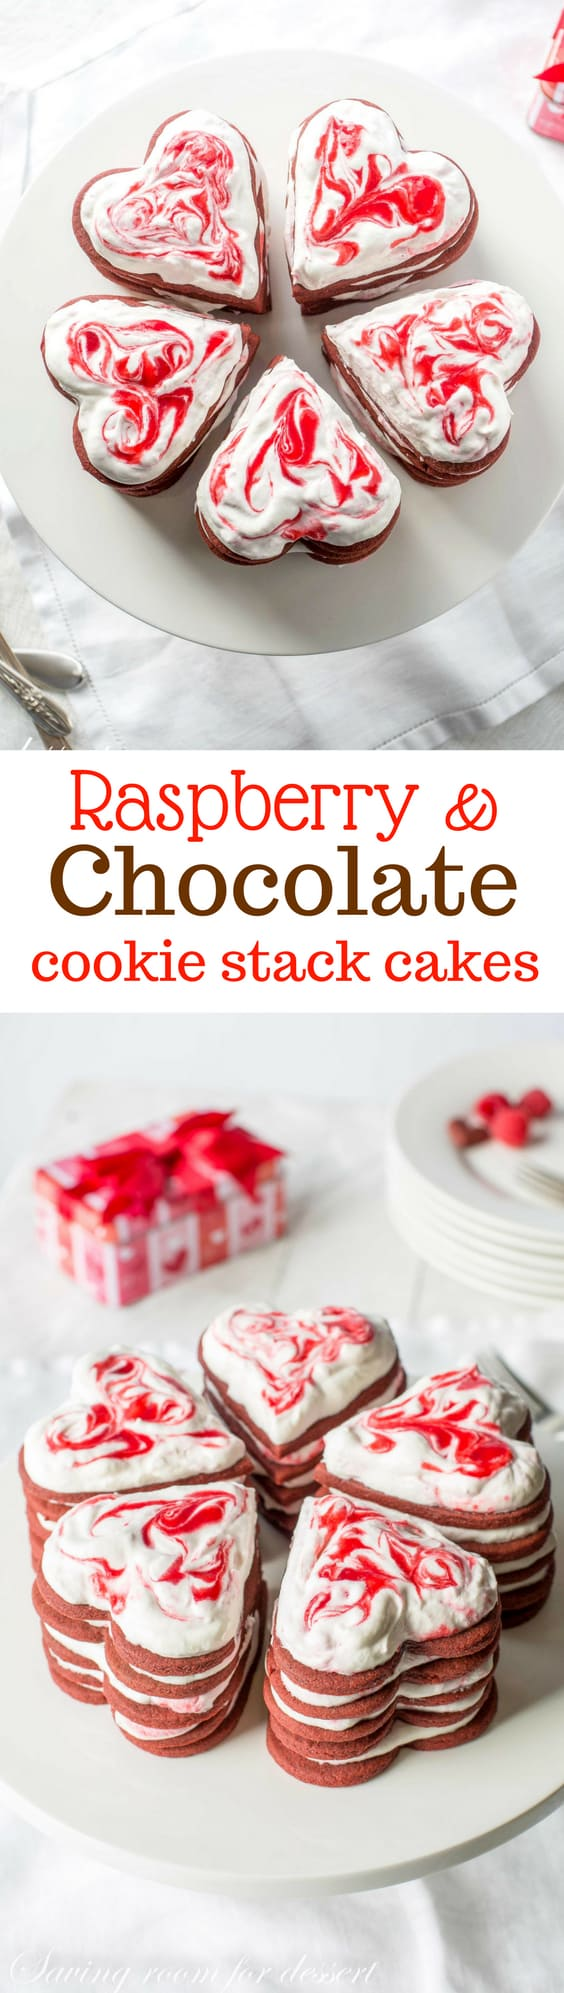 """Raspberry & Chocolate Cookie Stack Cakes ~ Chocolate cut-out cookies are layered between dollops of sweetened whipped cream swirled with raspberry puree then refrigerated for 24 hours. The cookies become soft and """"cake-like"""" and taste amazing! www.savingdessert.com"""